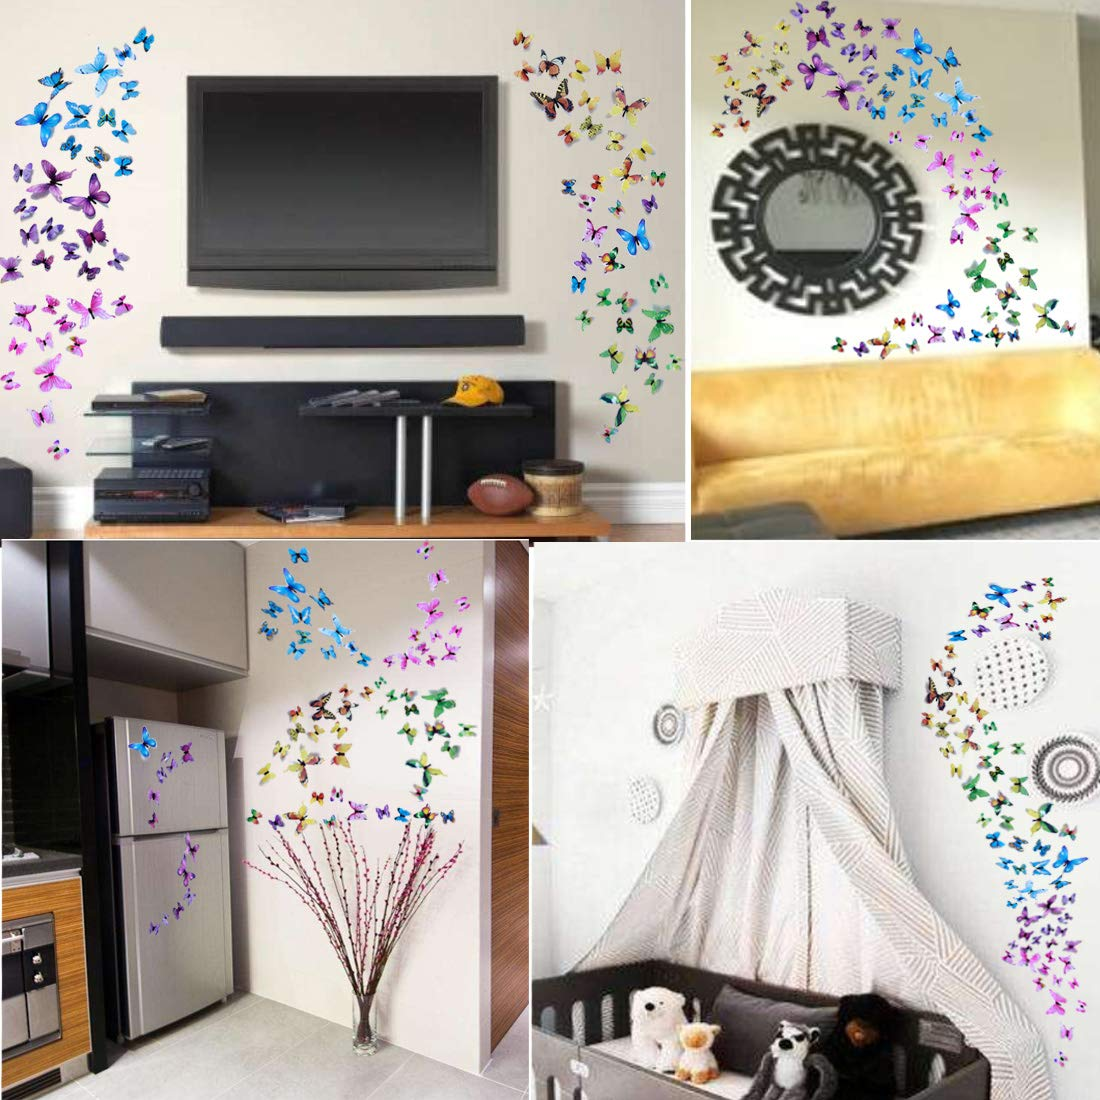 Wall Decals Butterfly 3D Sticker Decor - 72PCS Home Decoration for Living Room, Kids and Teen Girls Removable Mural Wall Art, Baby Nursery Bedroom Bathroom, Waterproof DIY Crafts by Ewong (Image #5)